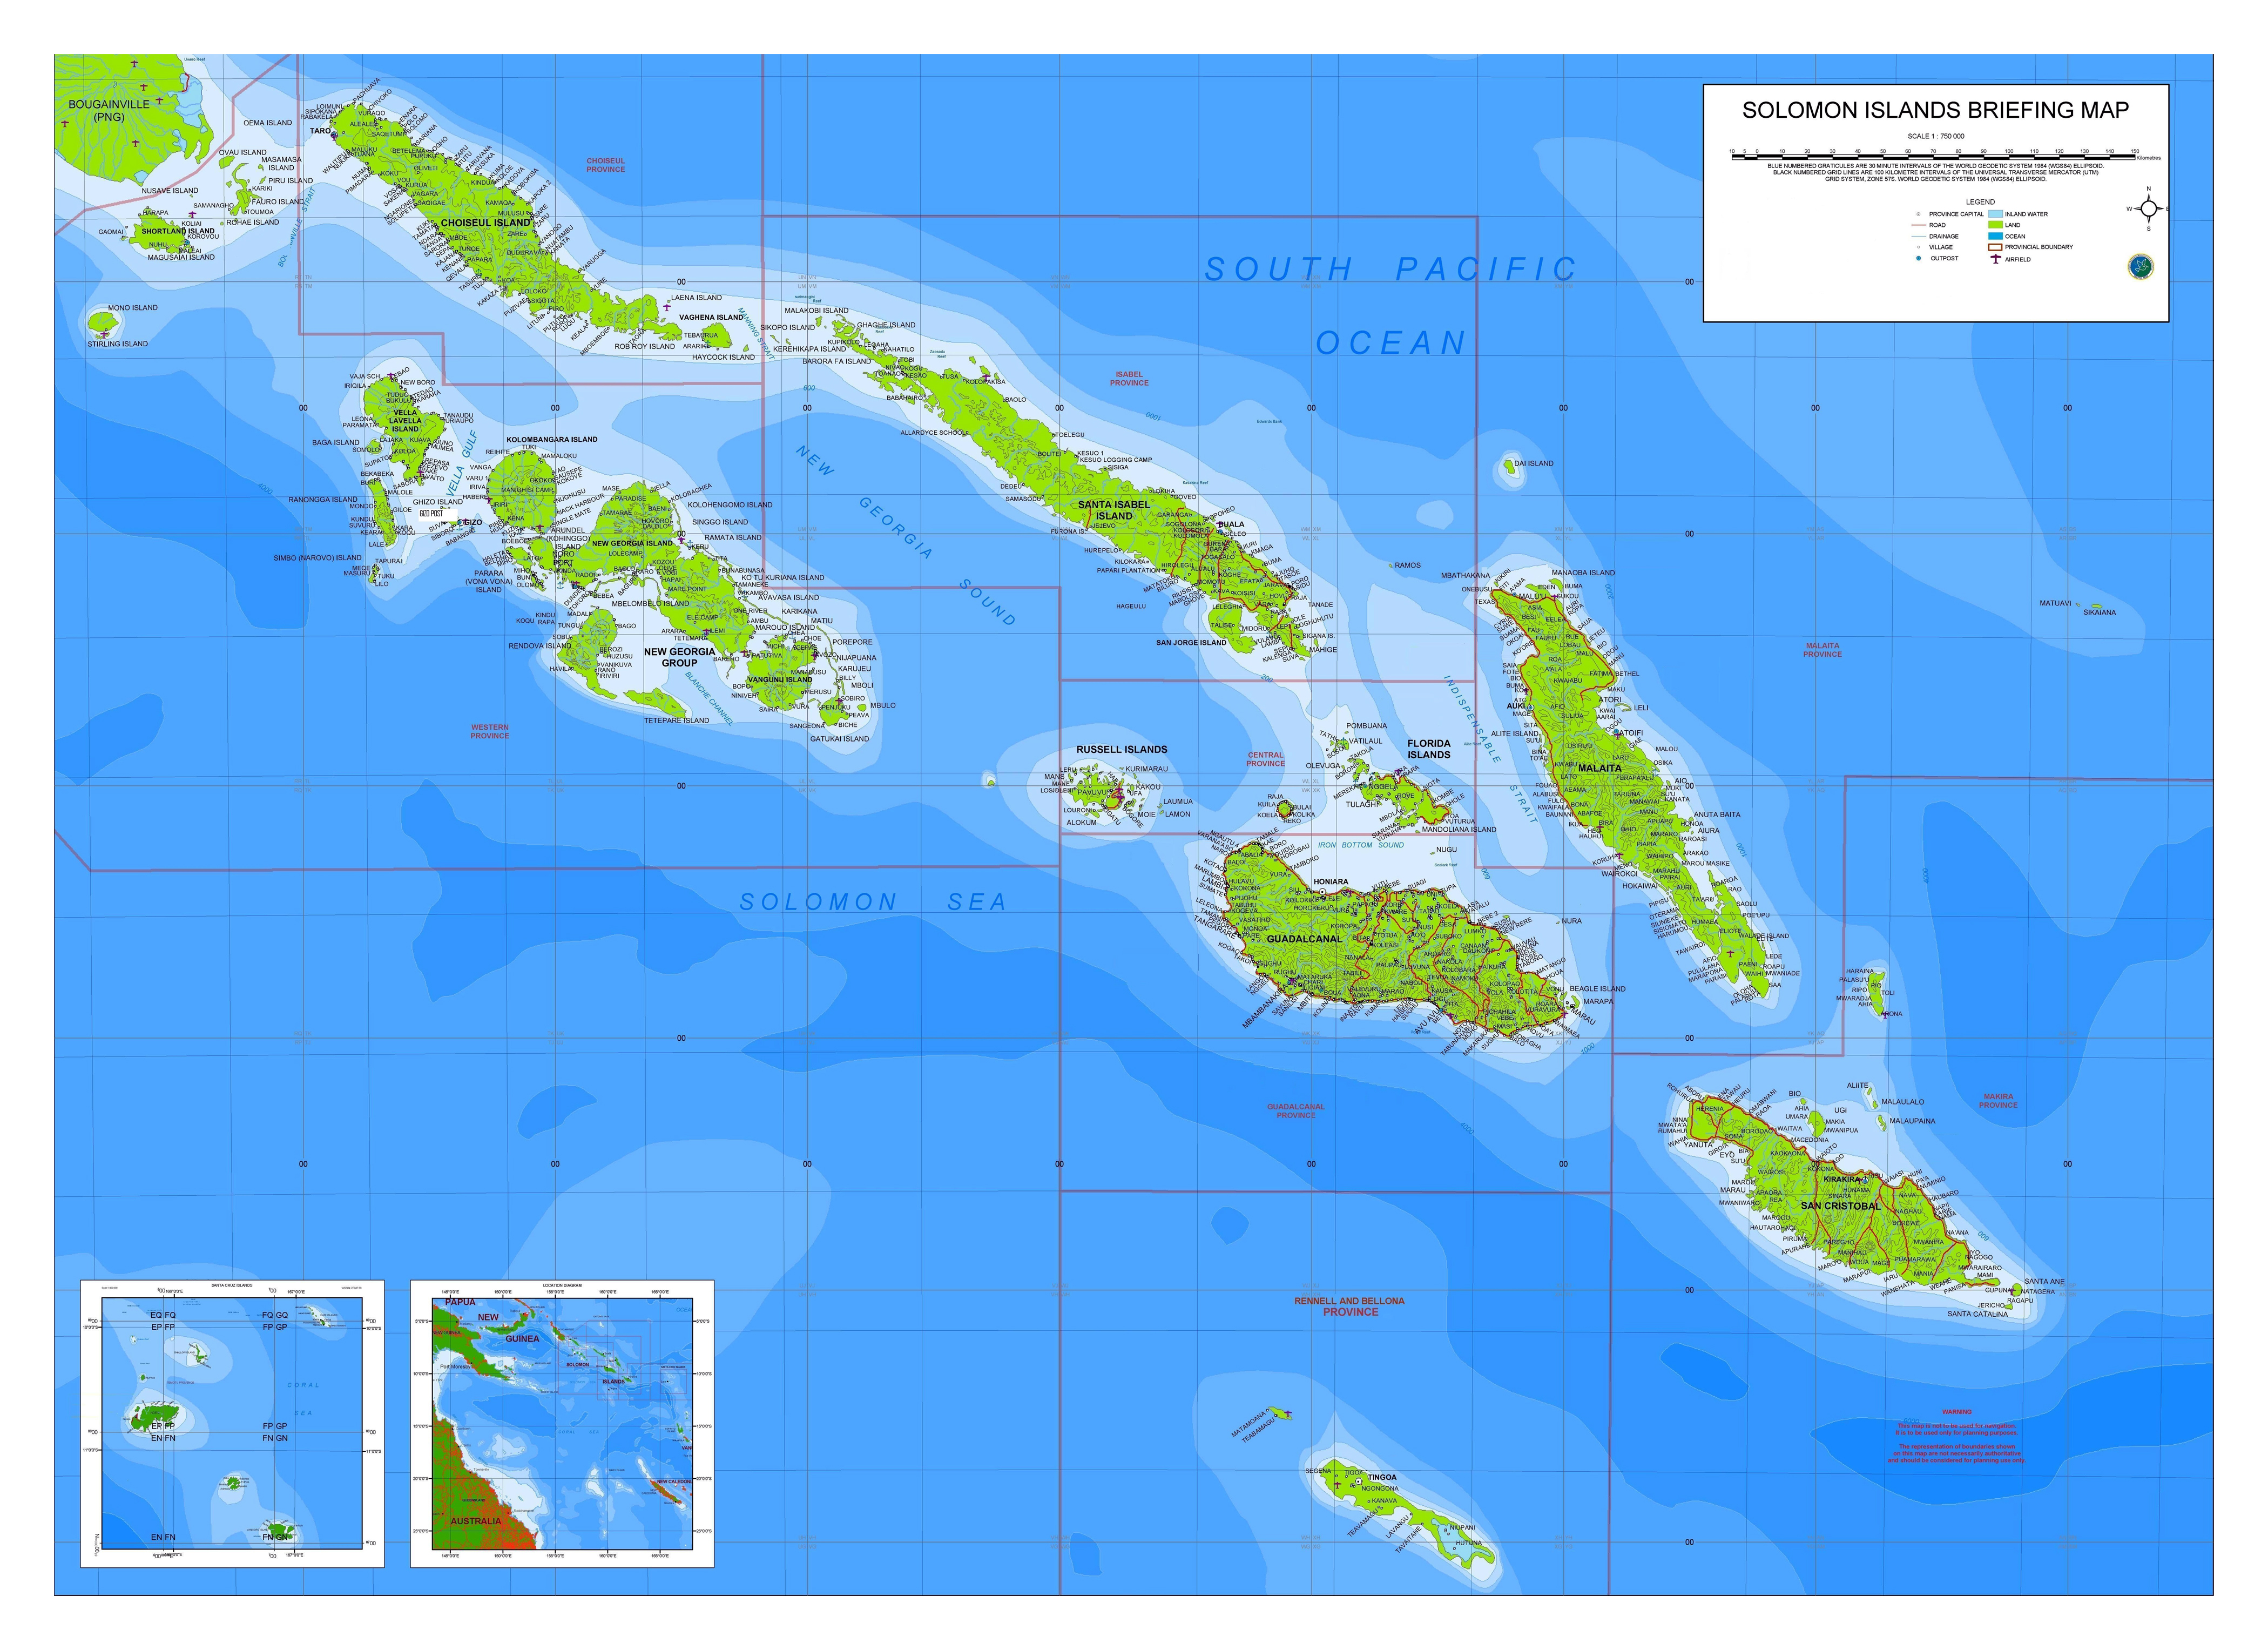 Large detailed briefing map of Solomon Islands with airports